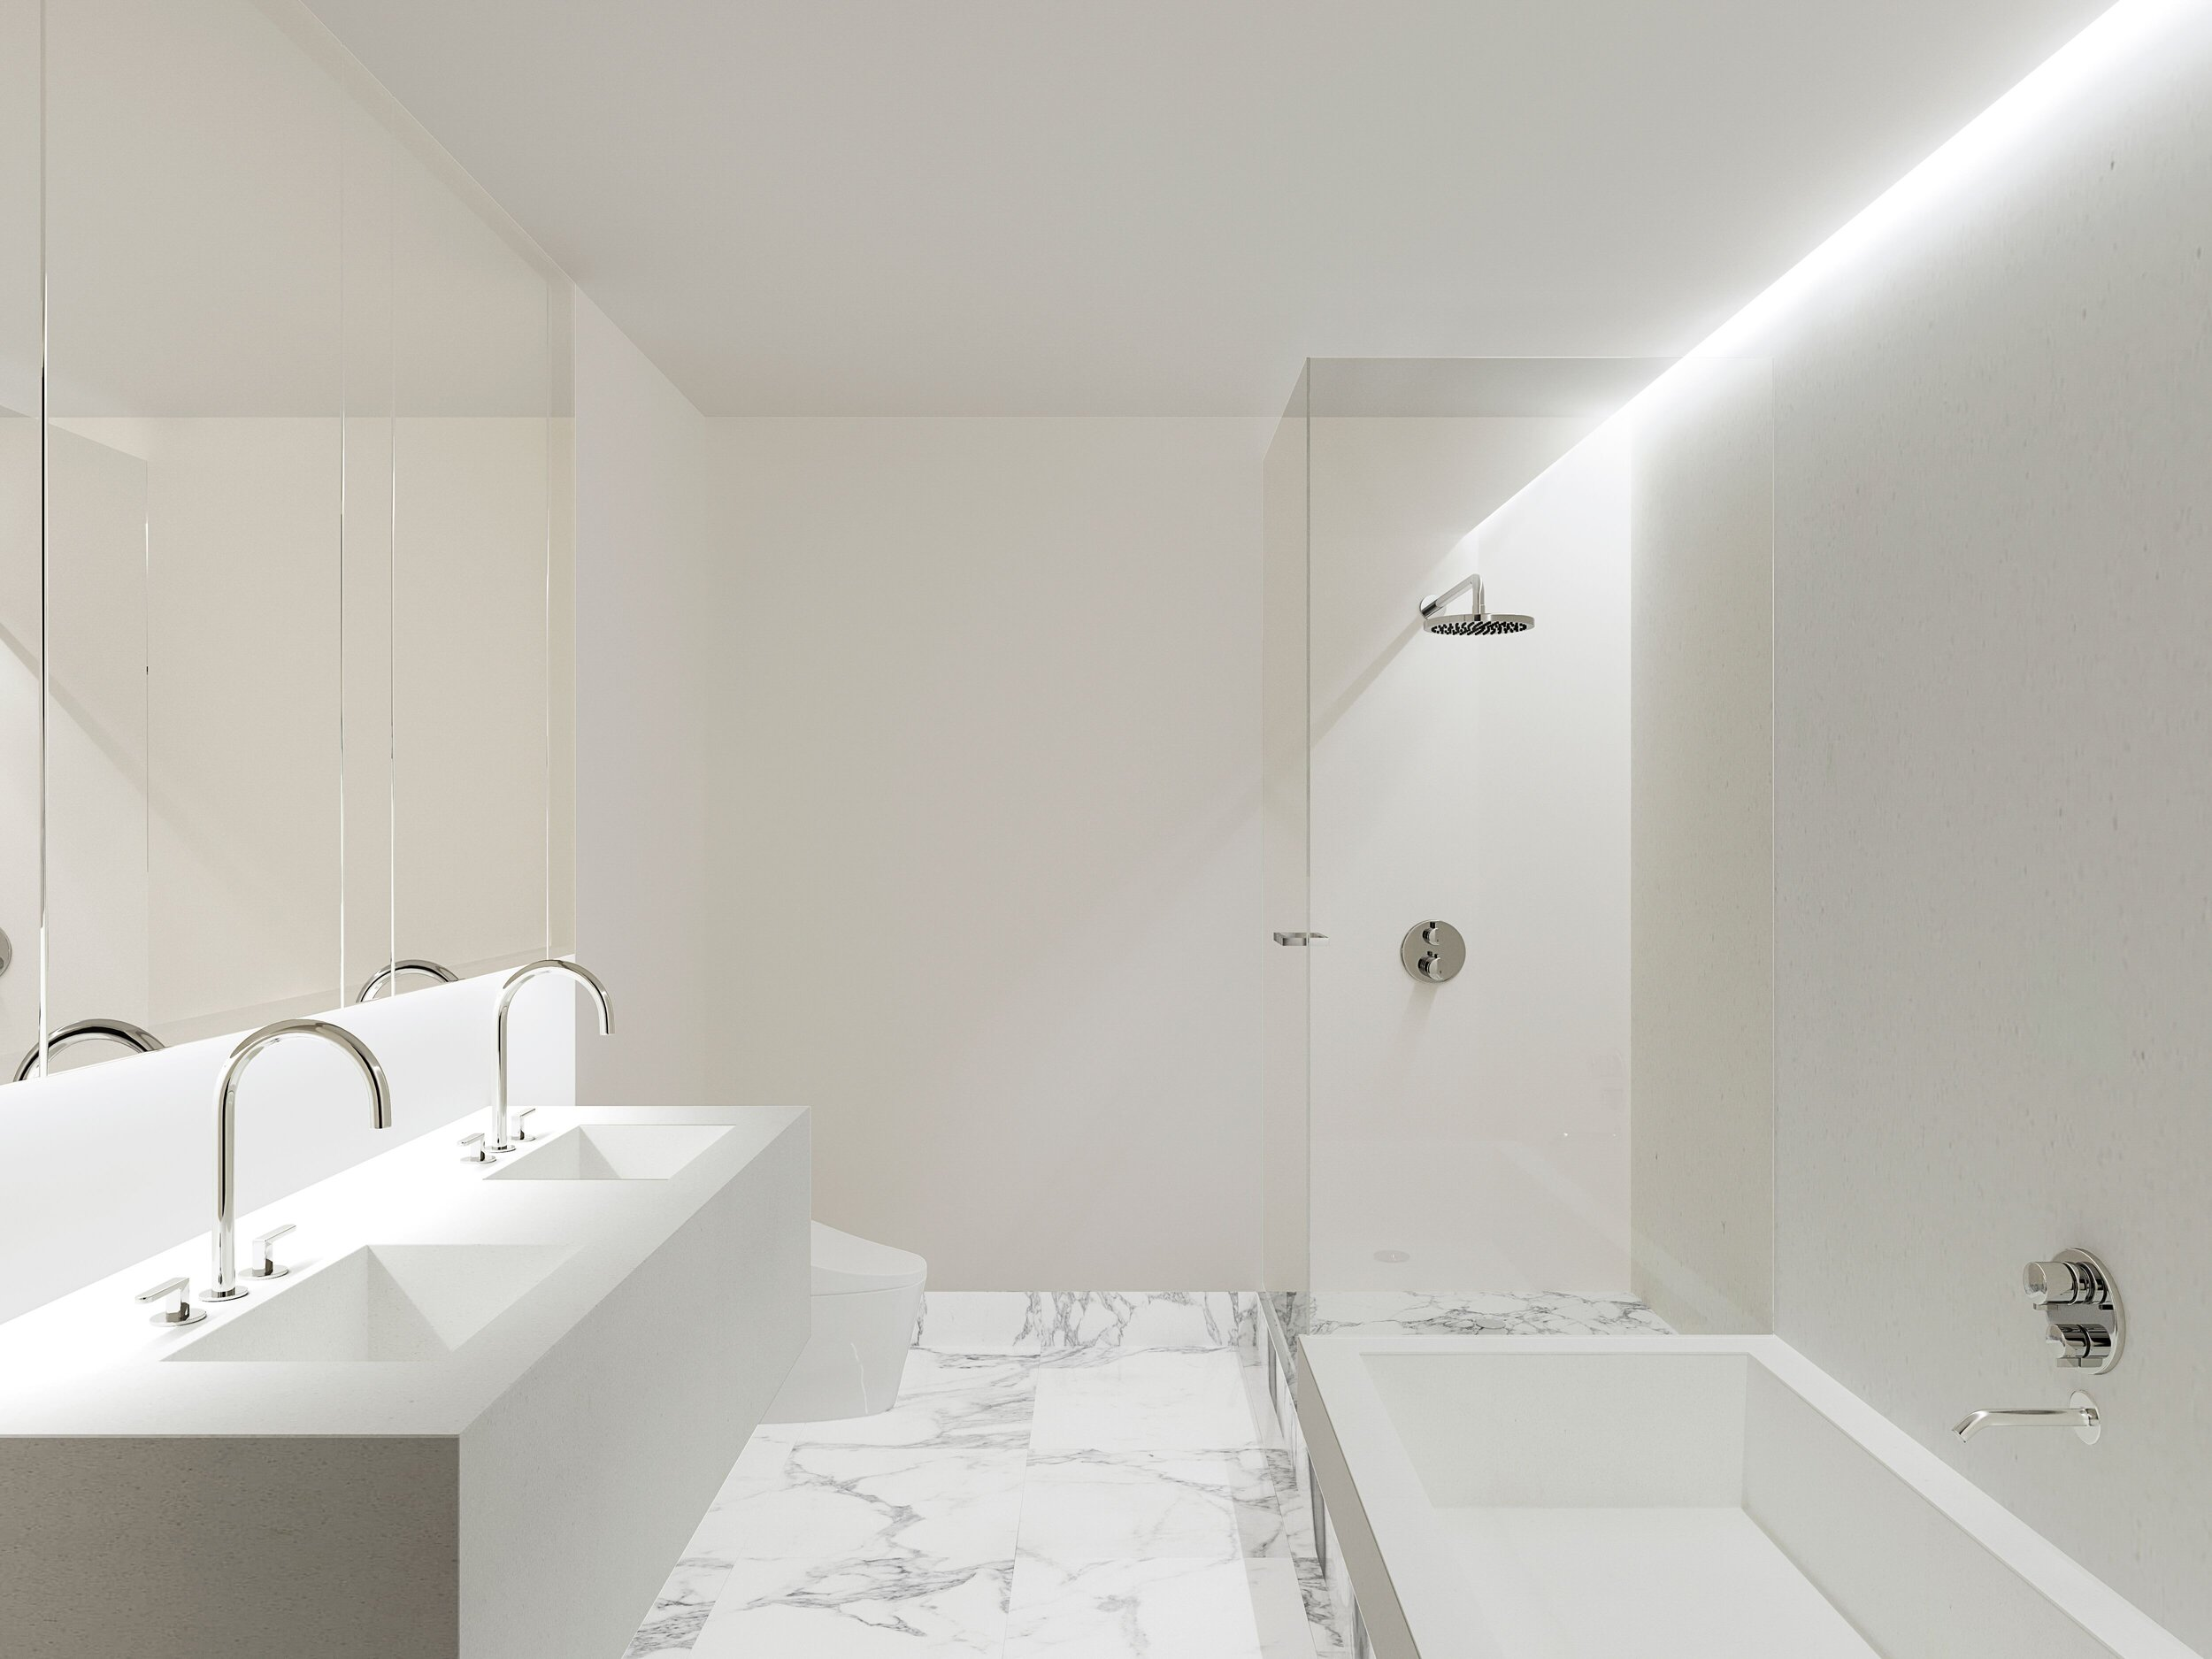 A rendering of the Master Bathroom redesign in our 25 Columbus Circle project with tadelakt plaster walls and calacatta marble flooring.